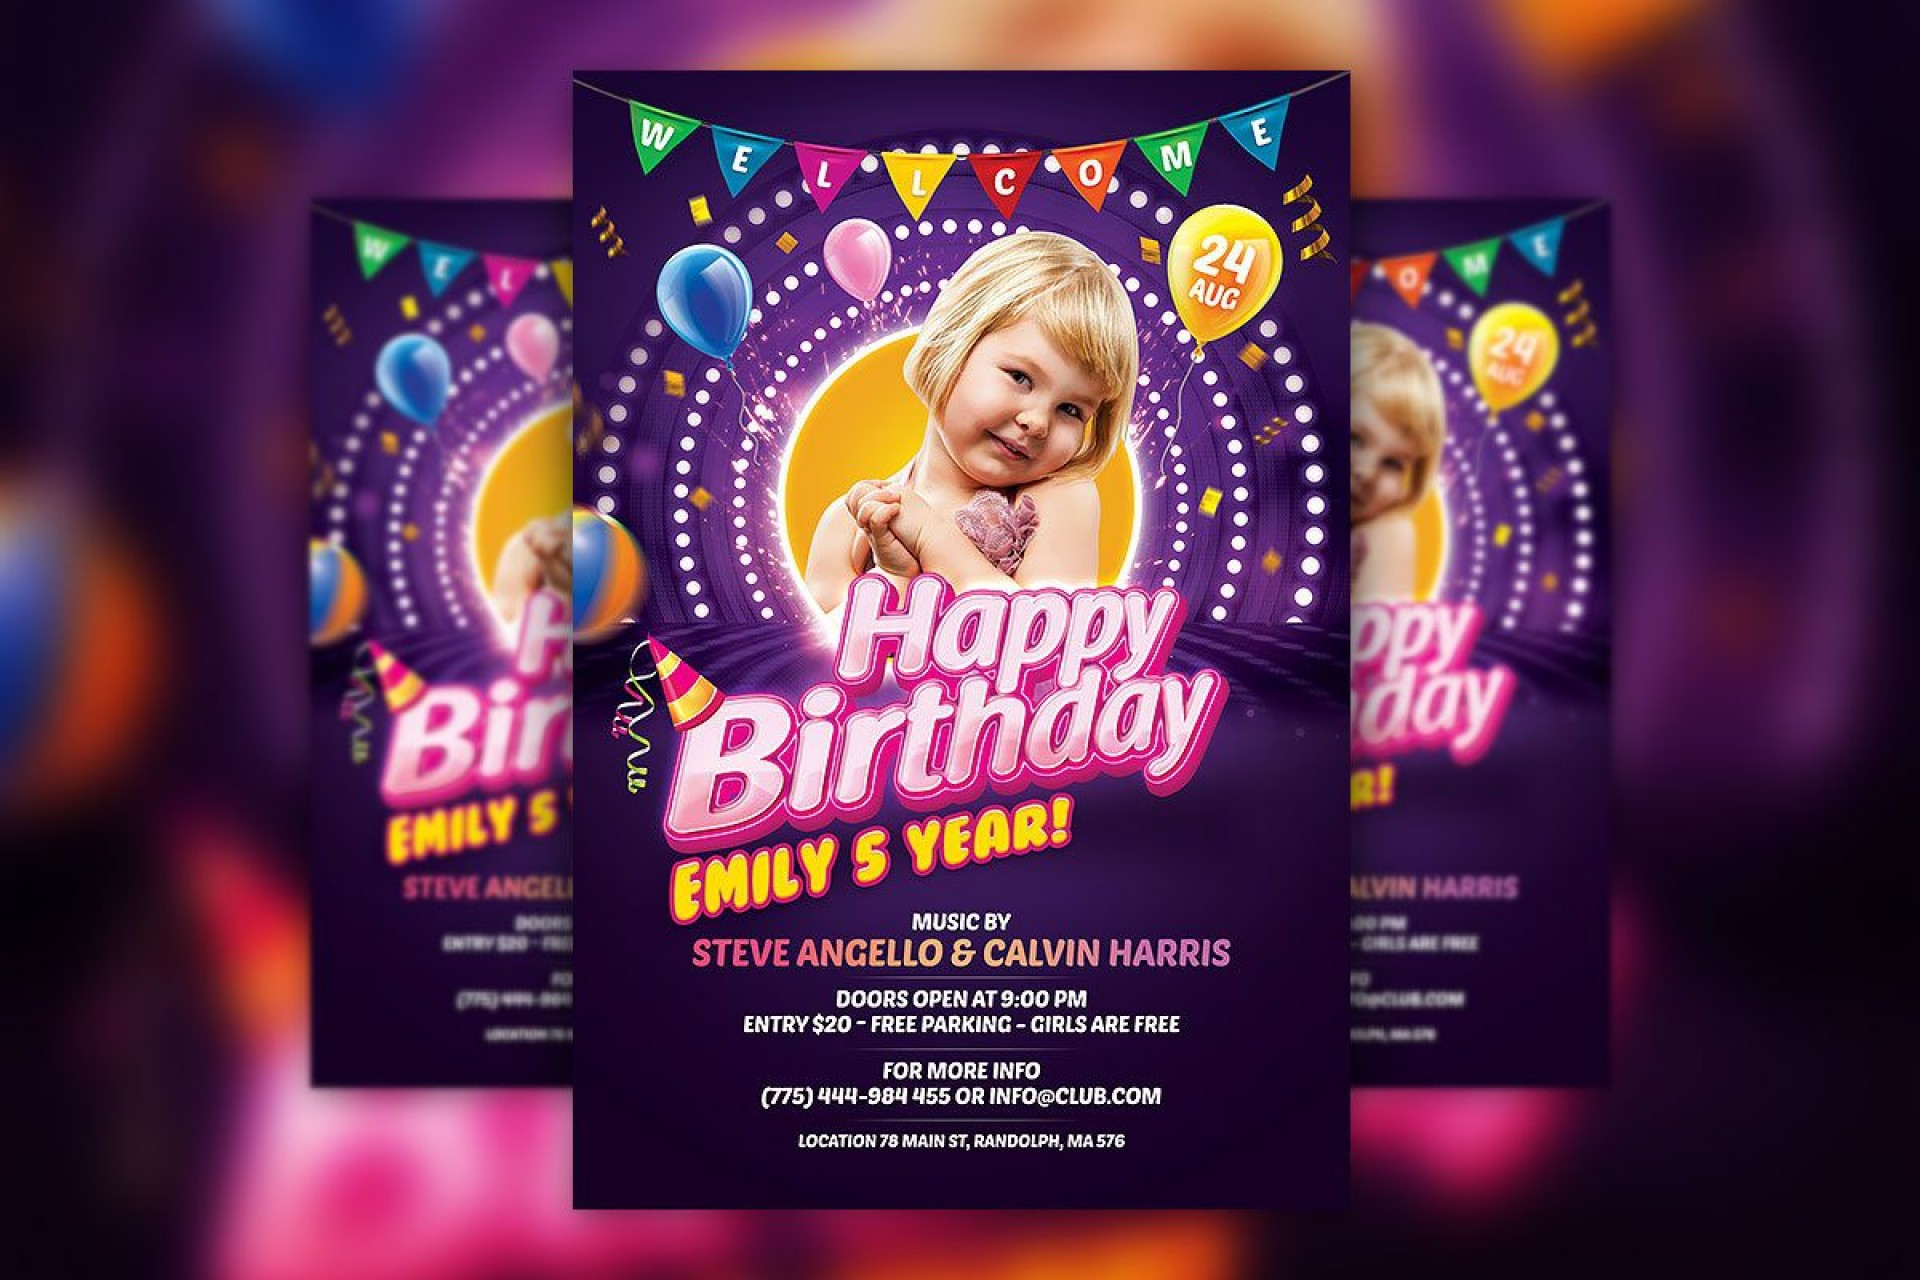 008 Unusual Birthday Party Invitation Flyer Template Free Download Idea 1920